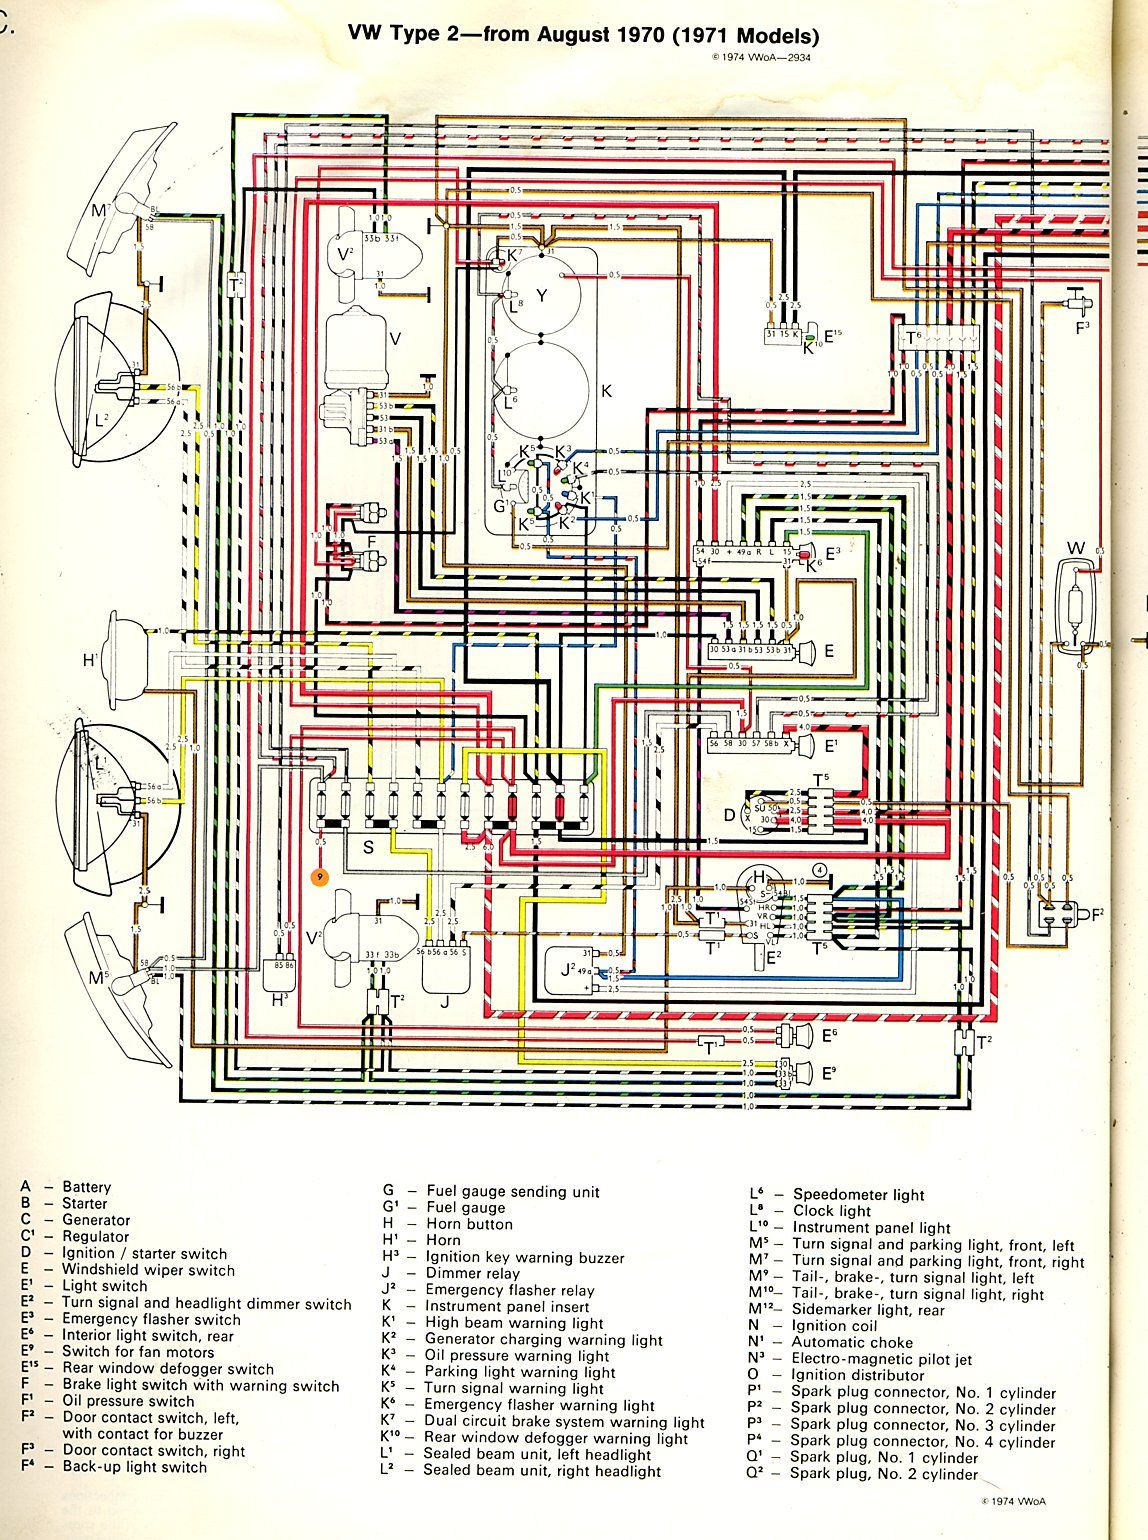 26730f3f6ceb3f1e1b50646c57249616 1971 bus wiring diagram thegoldenbug com stuff to try Basic Electrical Wiring Diagrams at bayanpartner.co